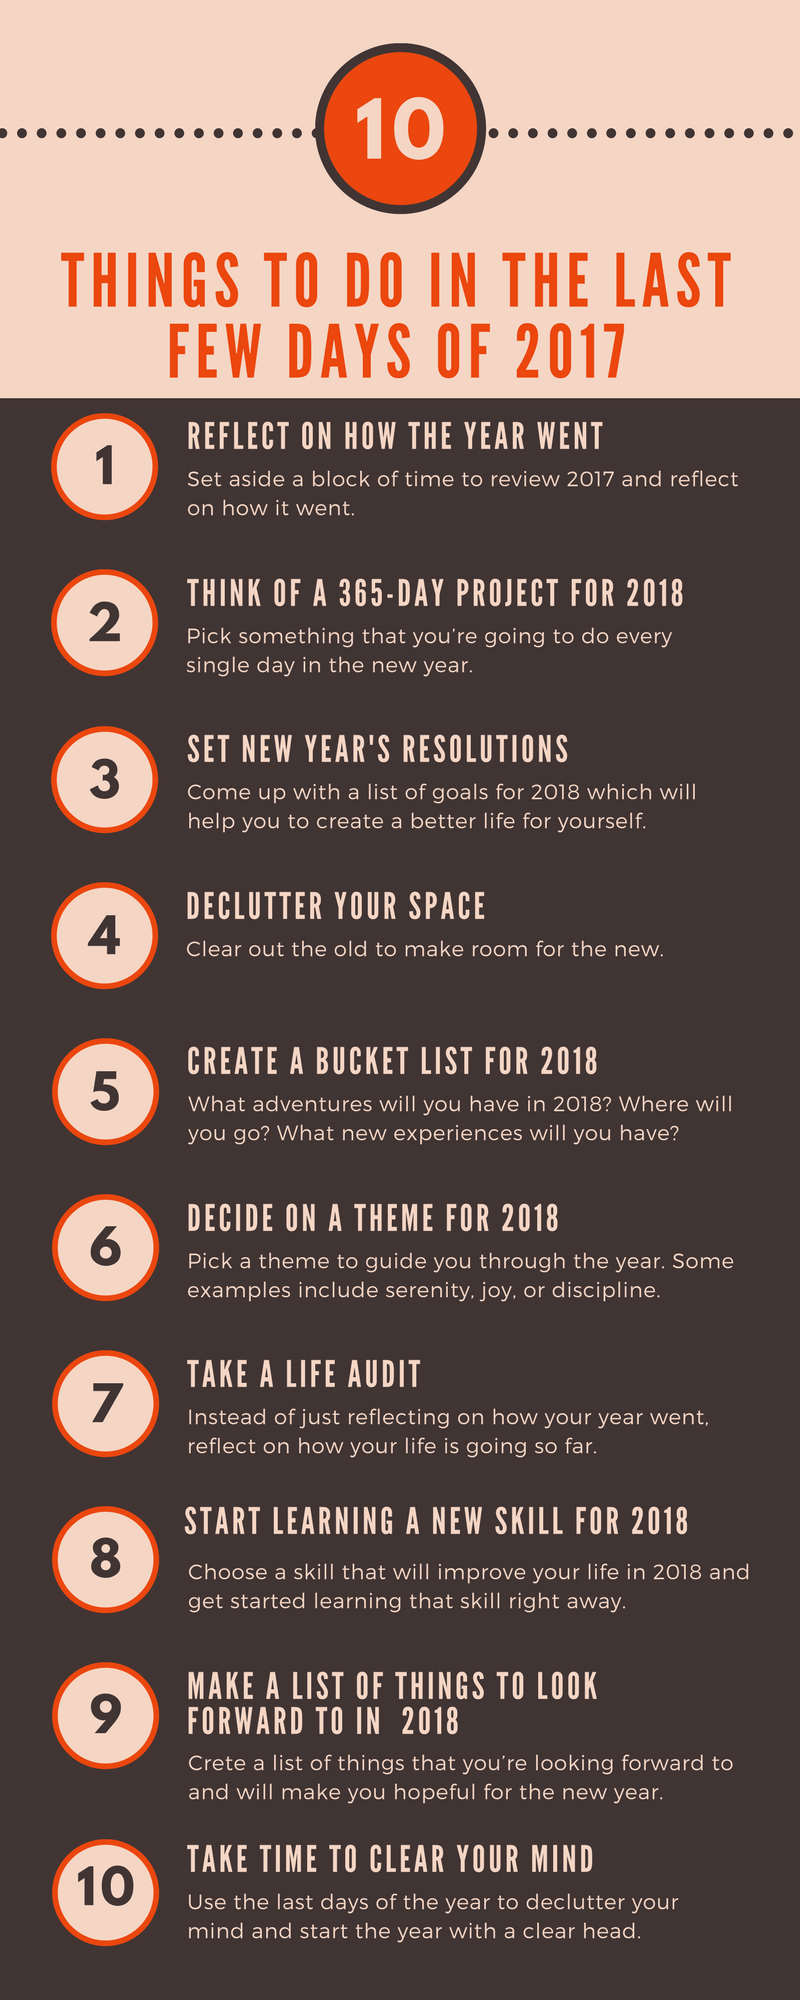 Self Improvement New Years Resolutionsself Improvement Niches